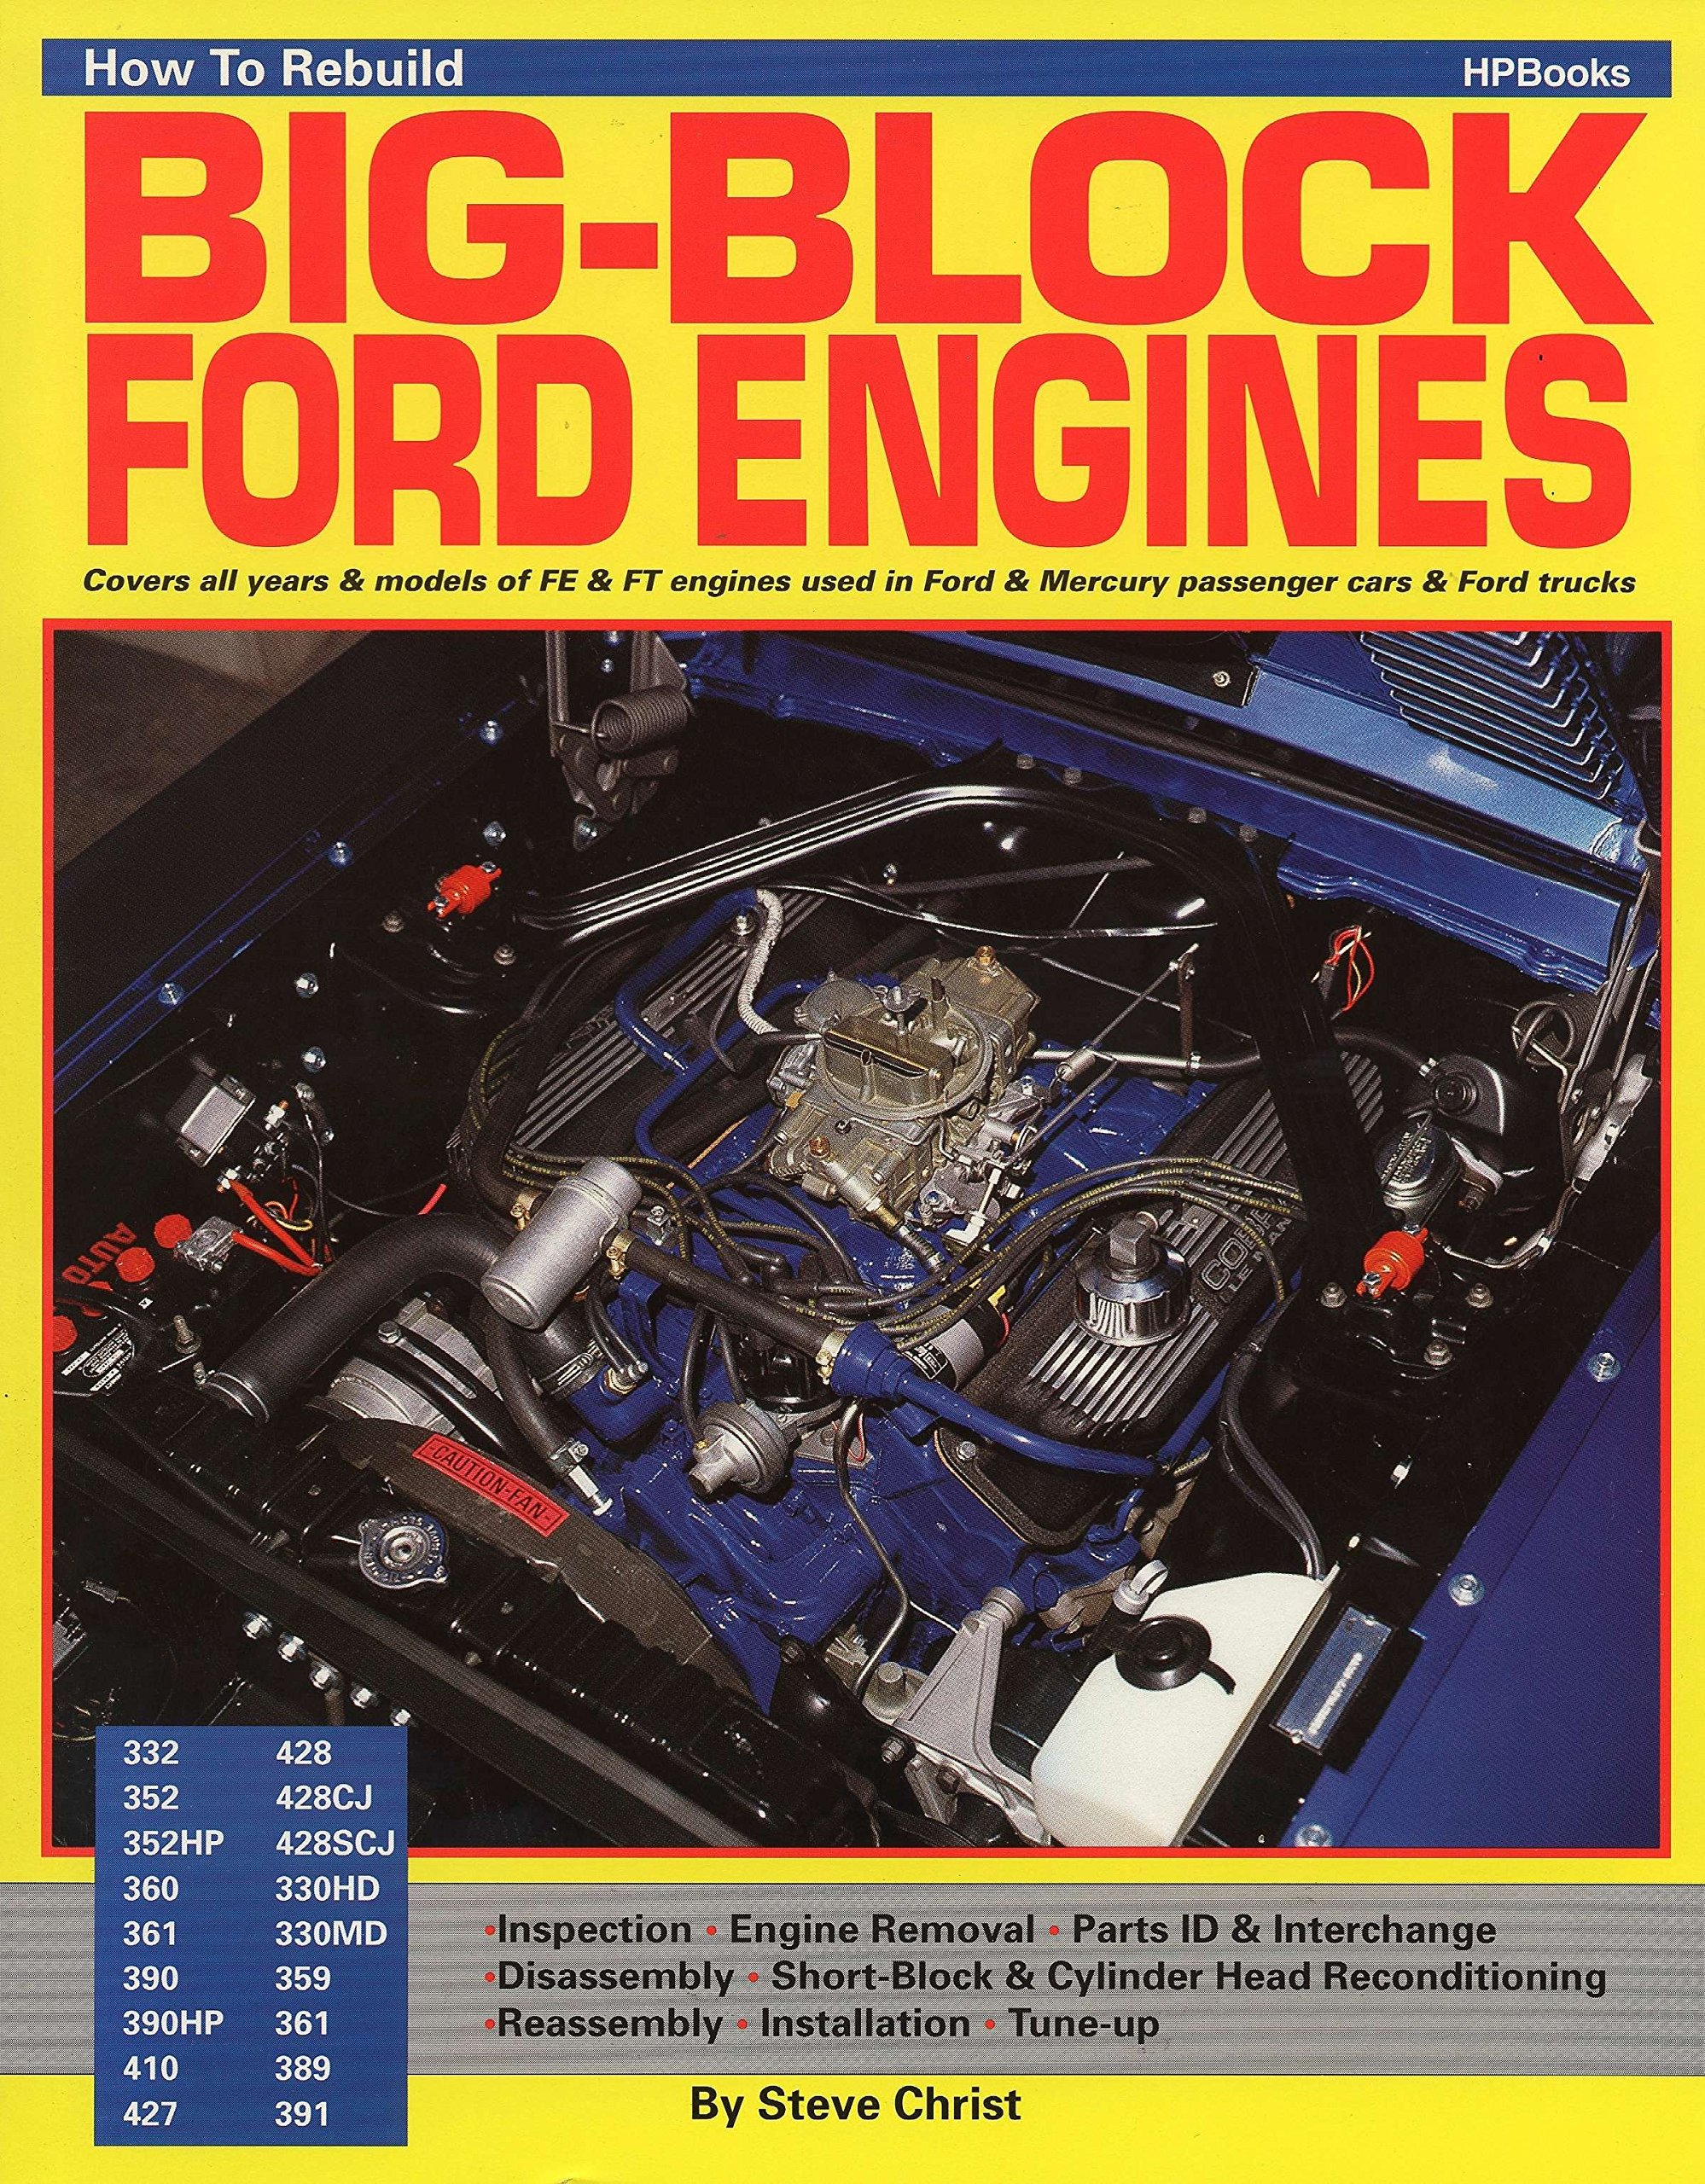 How To Rebuild Bigblock Ford Engines Steve Christ 9780895860705. How To Rebuild Bigblock Ford Engines Steve Christ 9780895860705 Amazon Books. Ford. Ford Fe 360 Diagram At Scoala.co